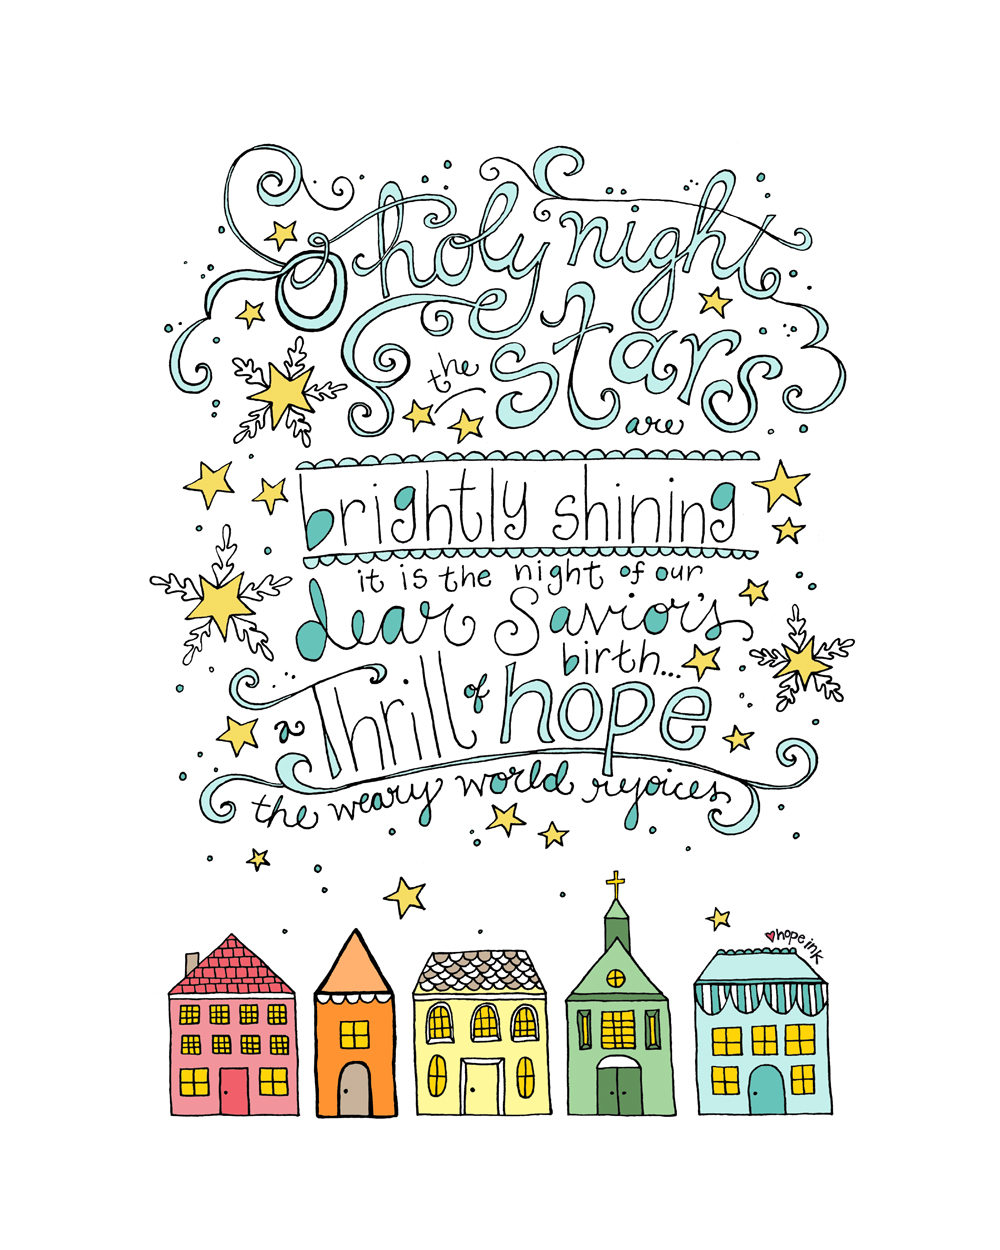 O Holy Night Rainbow Row Houses Hand Lettered Christmas Art Hope Ink.jpg